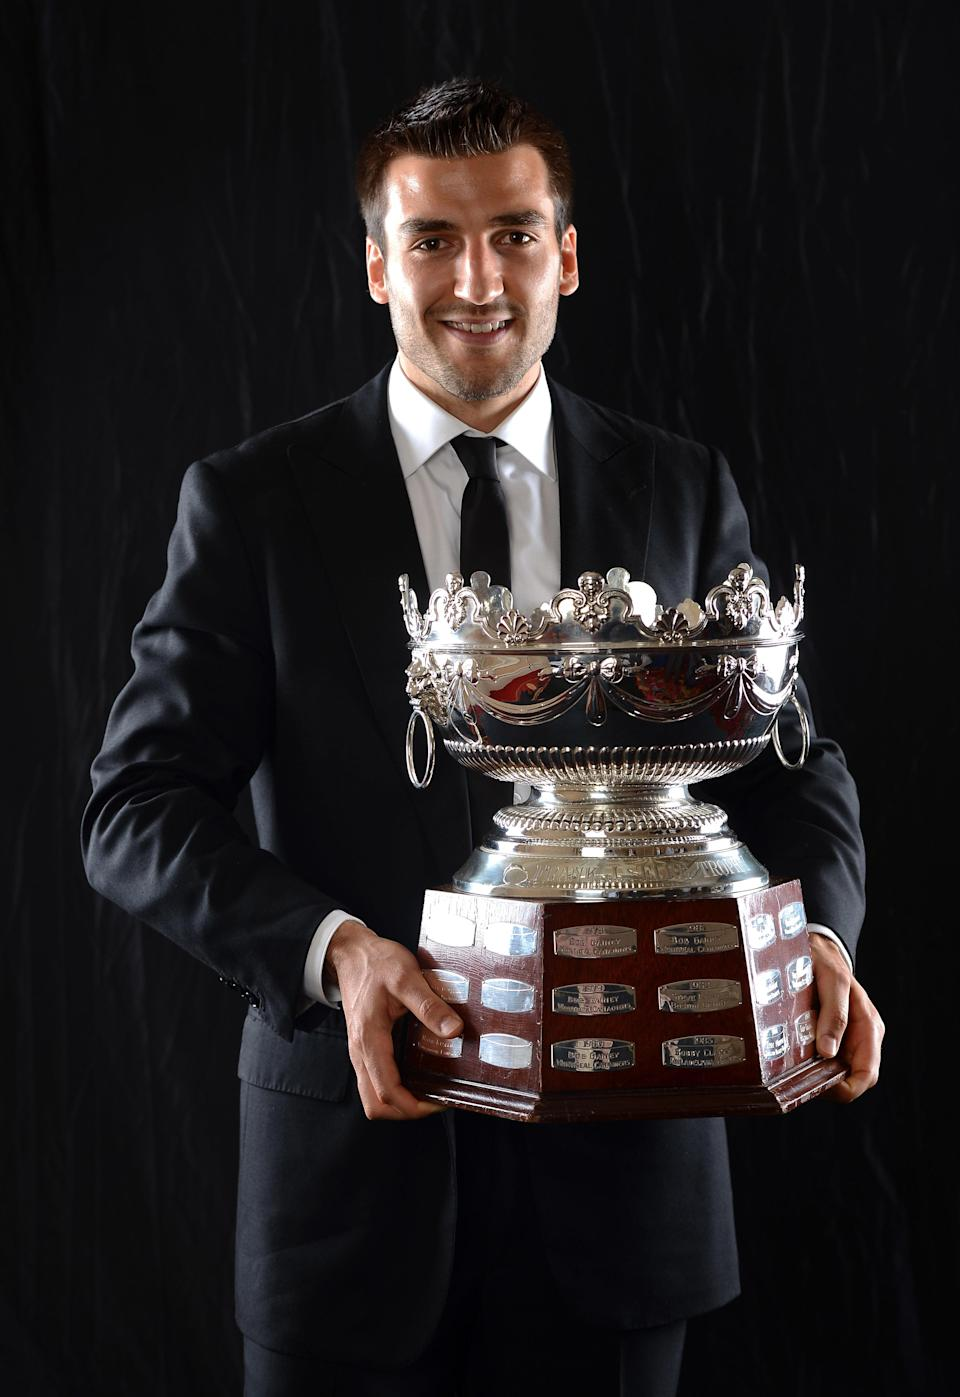 LAS VEGAS, NV - JUNE 20: Patrice Bergeron of the Boston Bruins poses after winning the Frank Selke Trophy during the 2012 NHL Awards at the Encore Theater at the Wynn Las Vegas on June 20, 2012 in Las Vegas, Nevada. (Photo by Harry How/Getty Images)